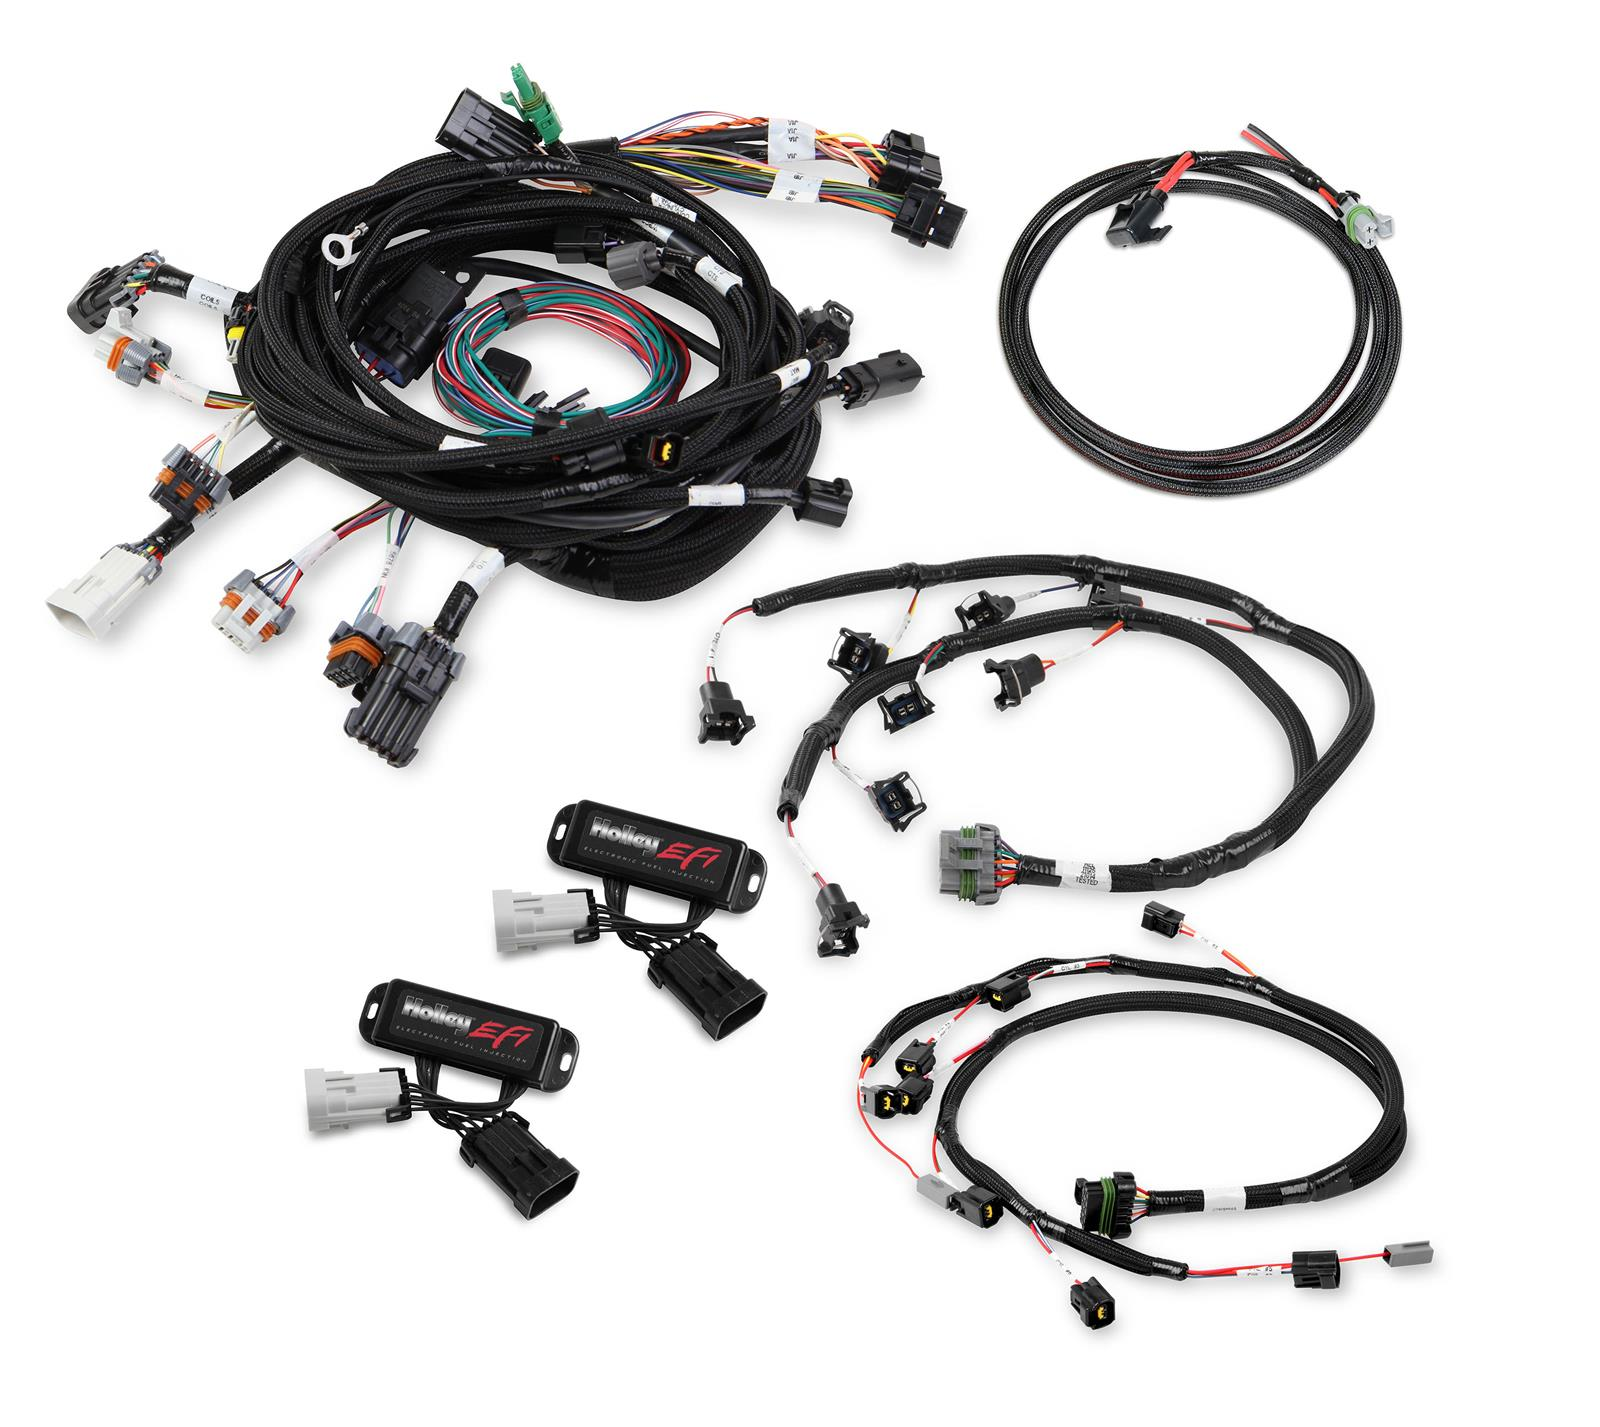 Holley Efi Systems Wiring Harnesses 558 505